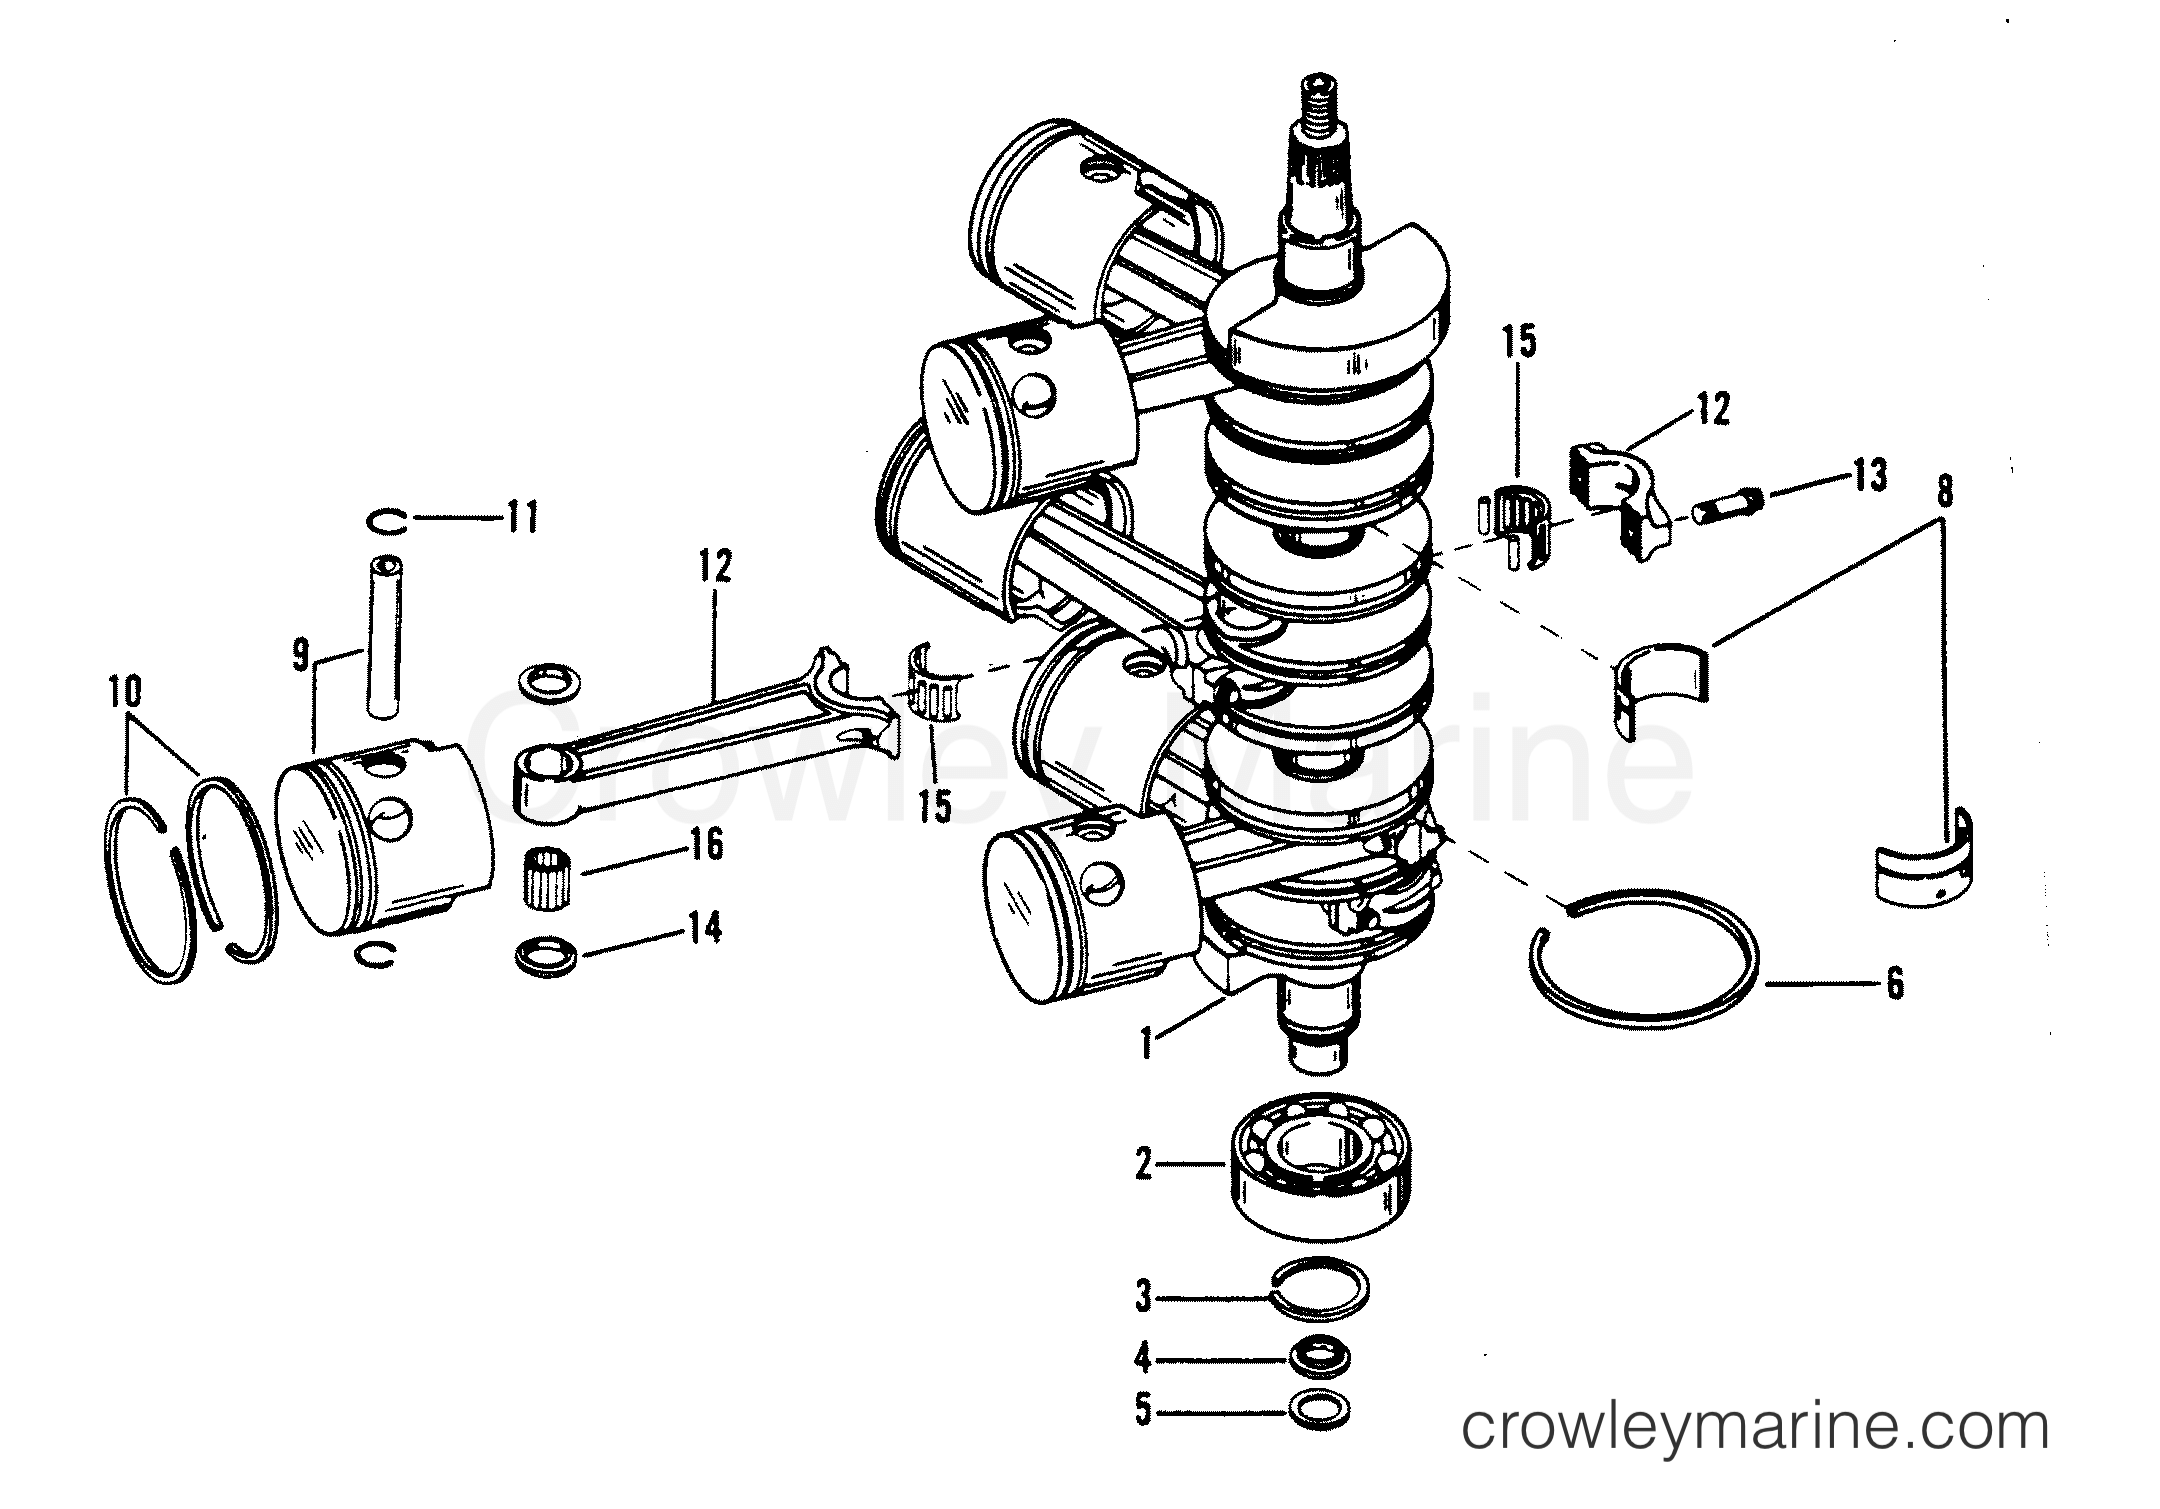 1991 Mercury Race Outboard 2.5 OS [CL EFI] - 1925242LH CRANKSHAFT, PISTONS AND CONNECTING RODS section